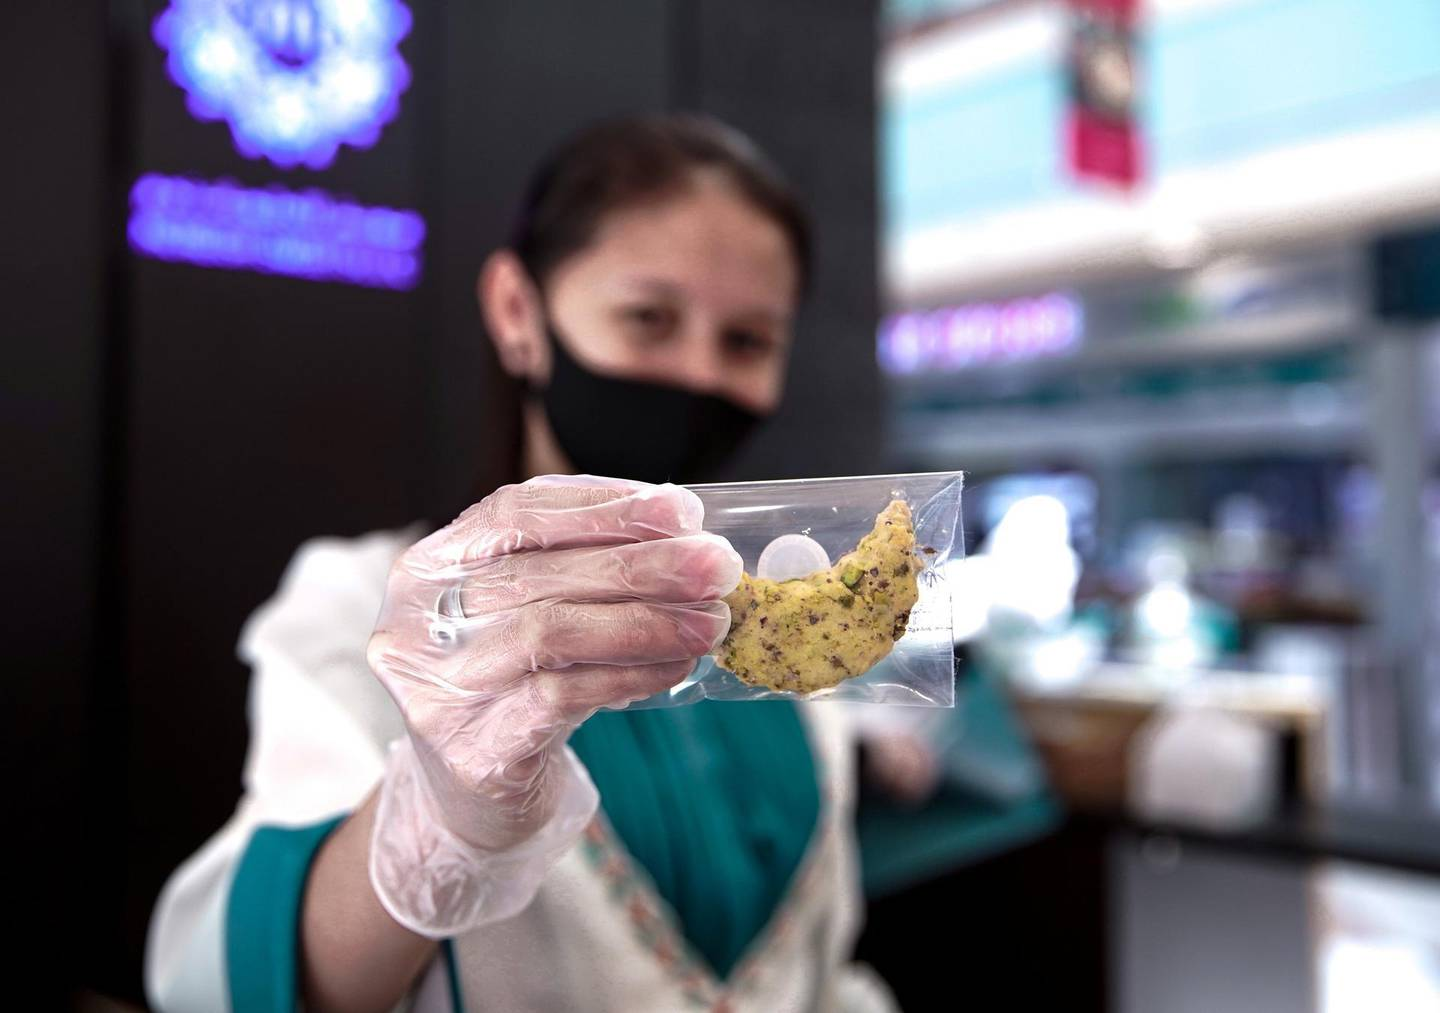 Abu Dhabi, United Arab Emirates, May 18, 2020.    A Moreish Sweets saleslady with some Ramadan sweets at the Al Raha Mall reopening during the Covid-19 pandemic.Victor Besa / The NationalSection:  NAReporter: